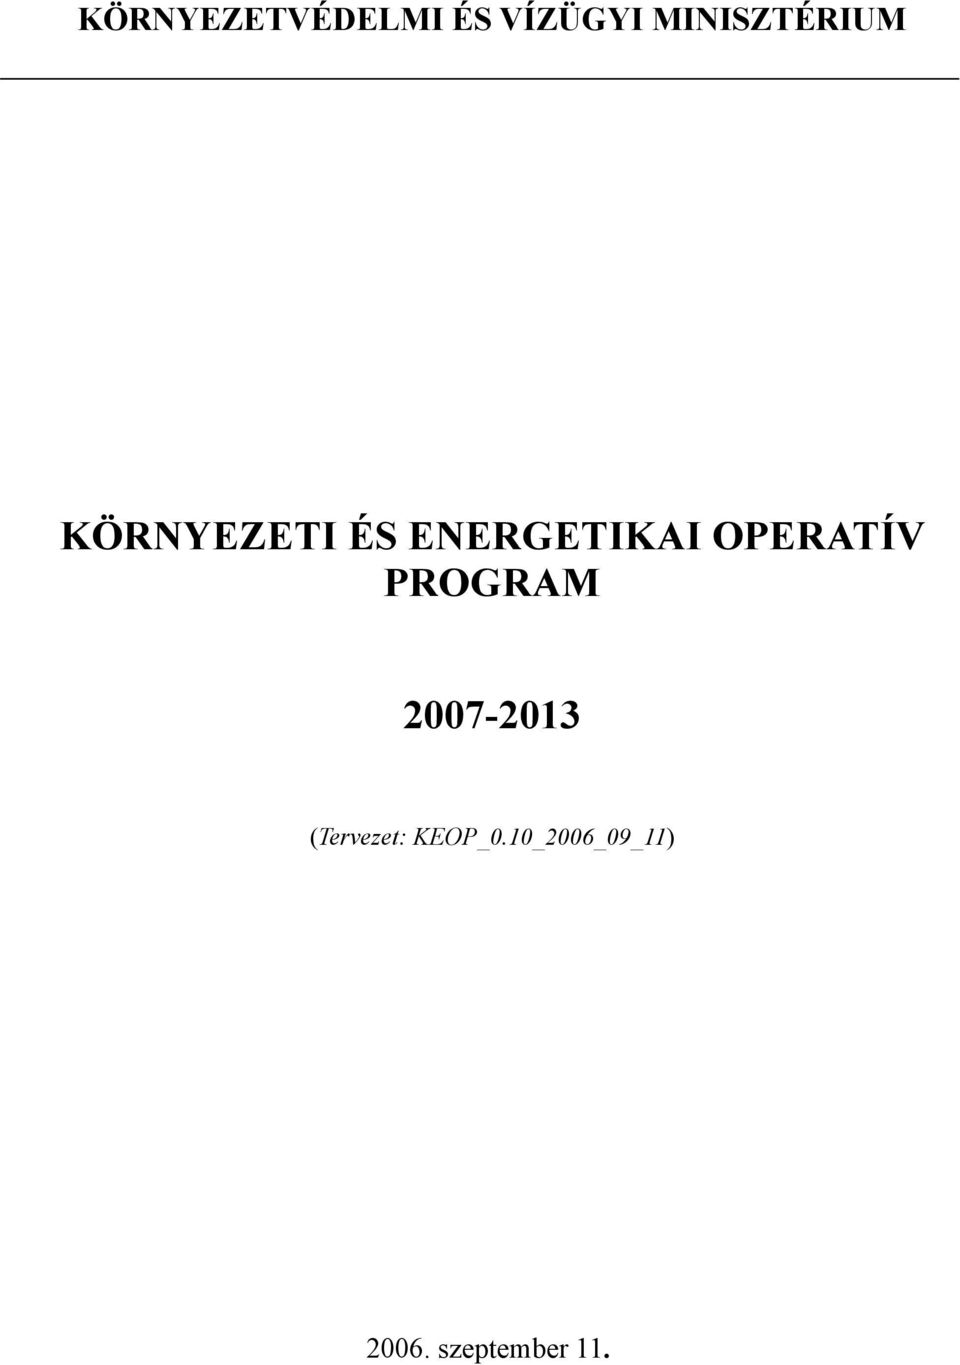 ENERGETIKAI OPERATÍV PROGRAM